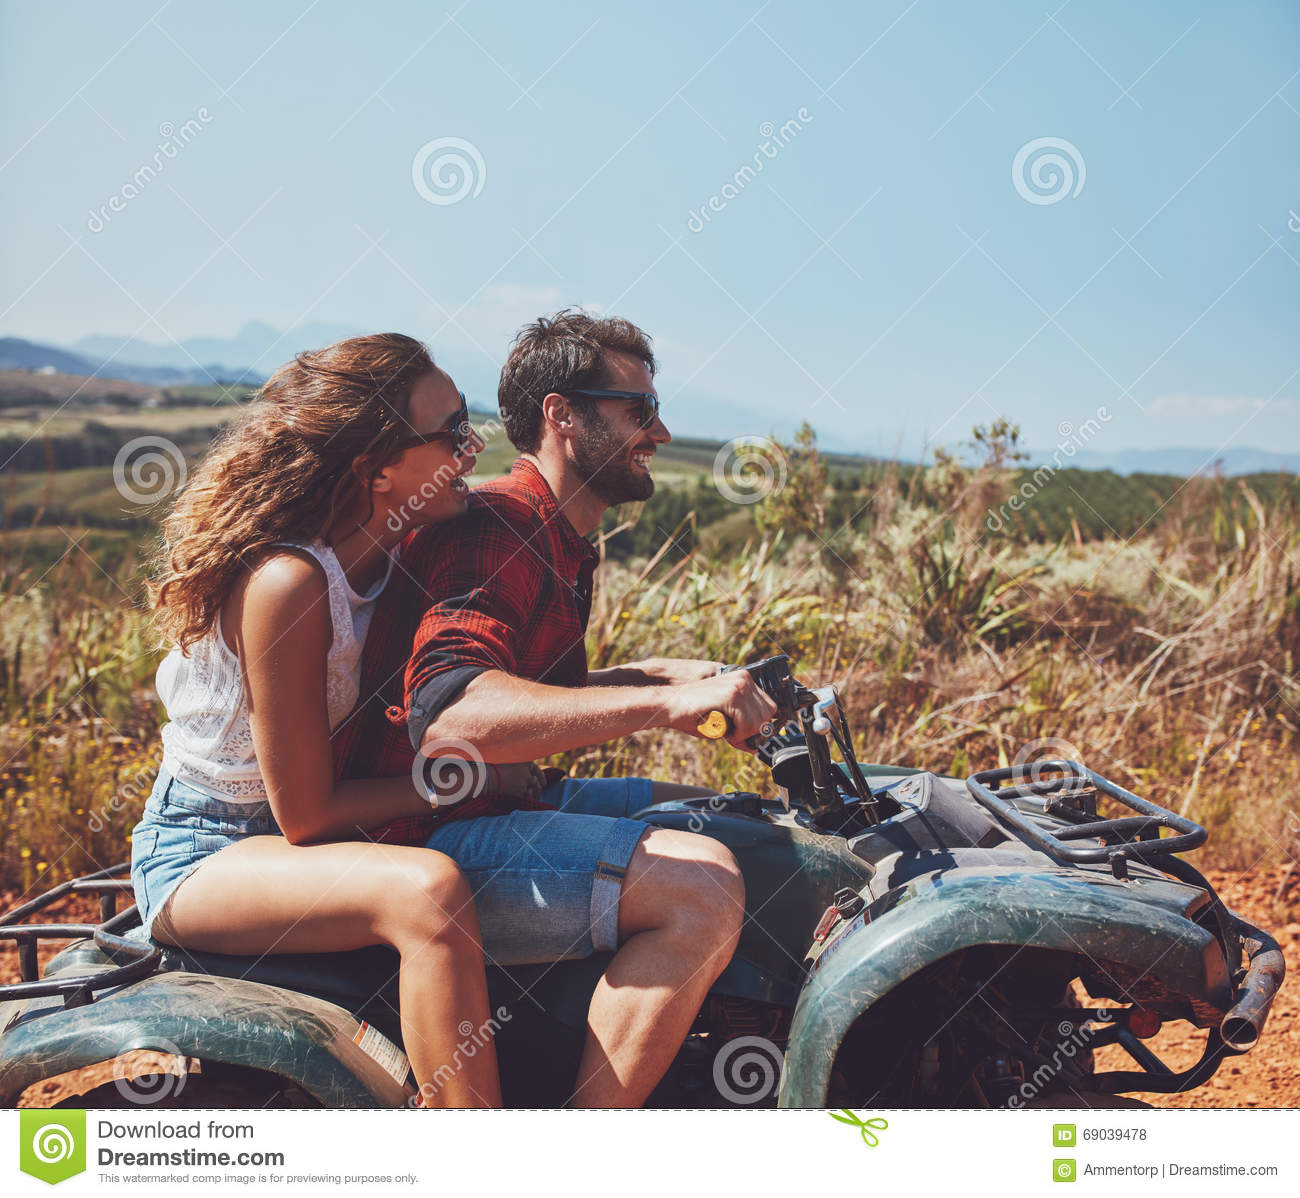 Couple Enjoying Their Summer Holidays Stock Photo: Couple Driving Off-road With Quad Bike Stock Photo